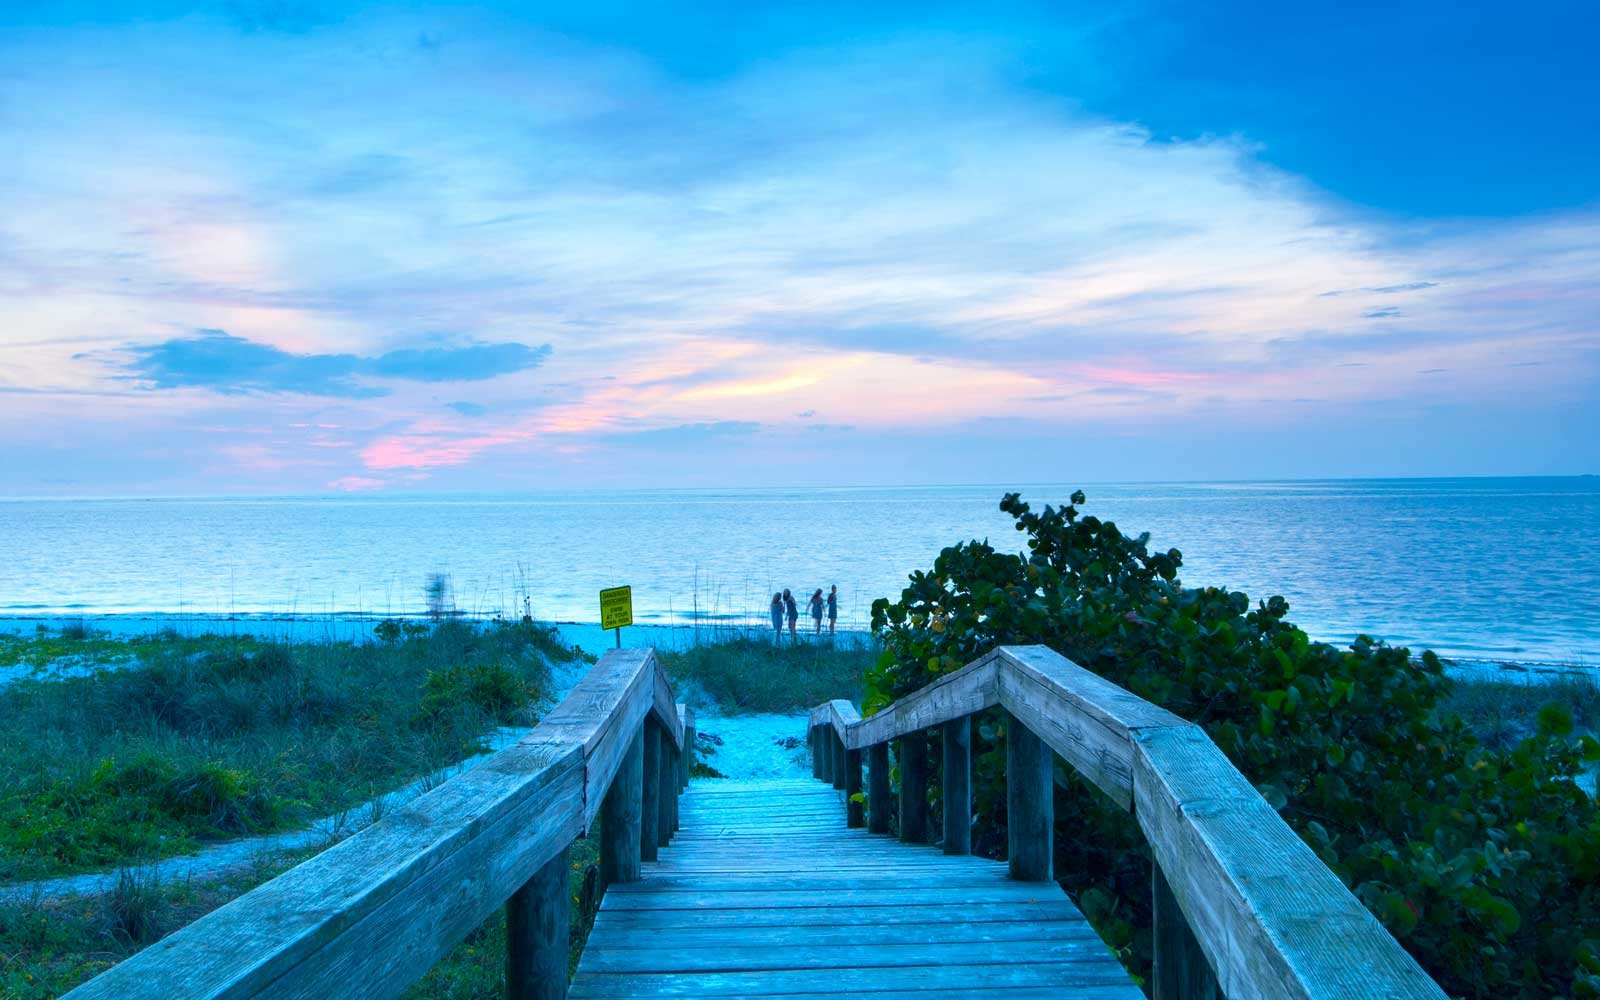 USA, Florida, Manatee County, Anna Maria Island, Bean Point at dusk